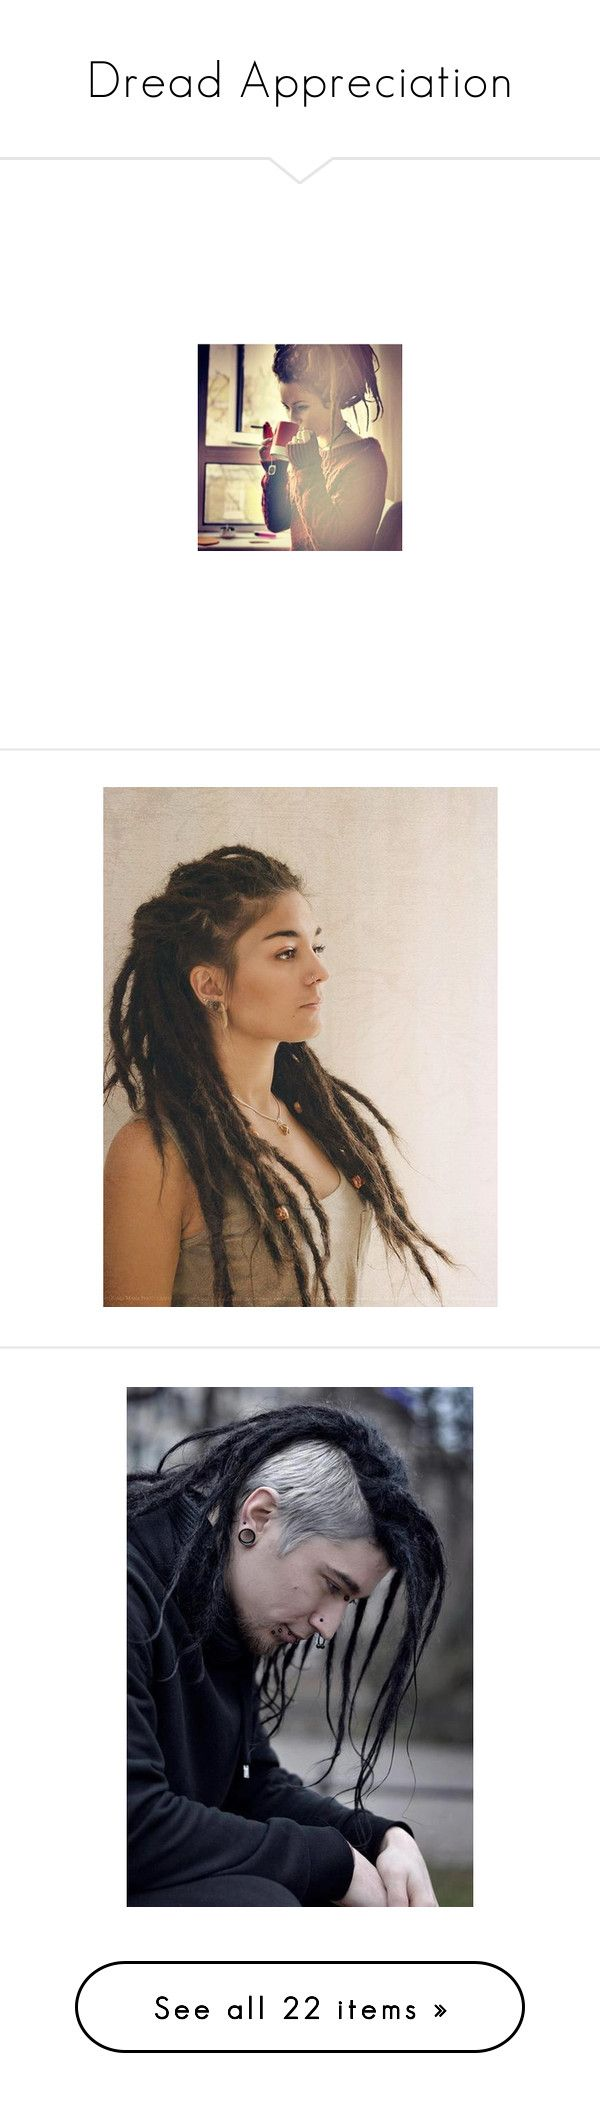 """Dread Appreciation"" by demi-wildflower ❤ liked on Polyvore featuring dreadlocks, hair, people, pictures, accessories, hair accessories, beauty products and brown hair"